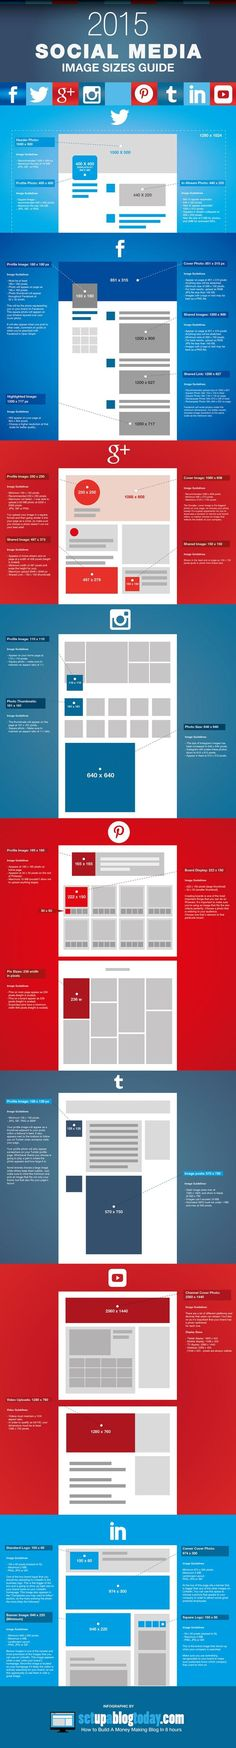 Love this cheat sheet for social media image sizes! Every DIY business owner knows the struggle that can come along adjusting your image sizes for every platform. Check out The Essential Cheat Sheet for Social Media Image Sizes Inbound Marketing, Marketing Digital, Marketing Trends, Marketing Services, Facebook Marketing, Content Marketing, Internet Marketing, Online Marketing, Social Media Marketing